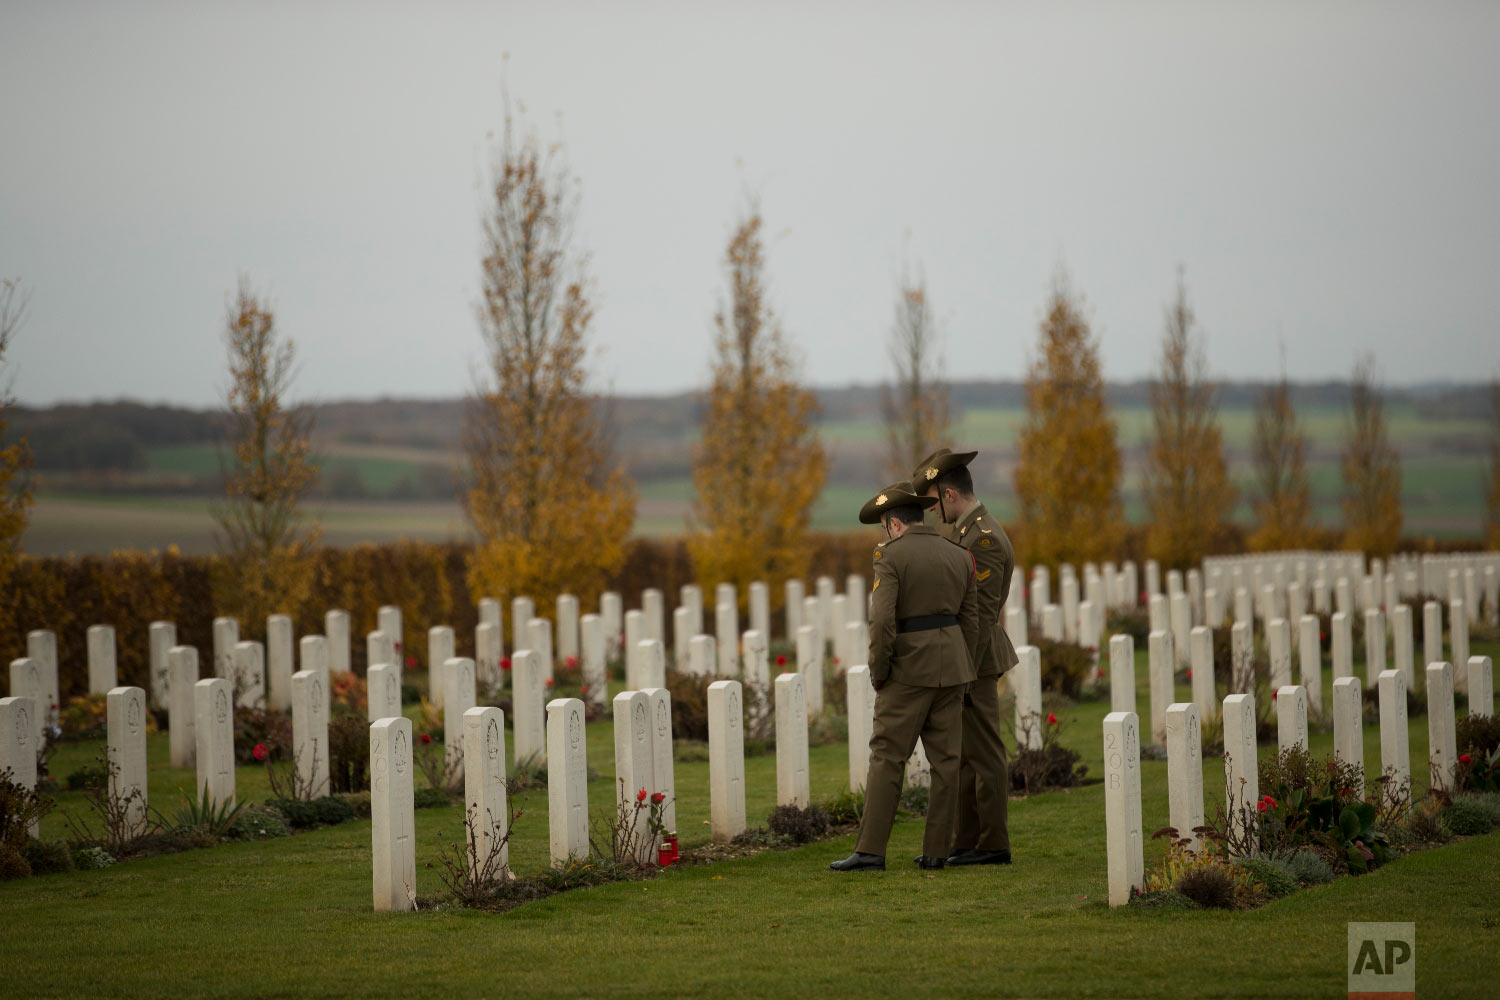 Two Australian soldiers walk along graves prior to an Armistice ceremony marking 100 years since the end of the World War I, at the Australian National Memorial in Villers-Bretonneux, France, Sunday, Nov. 11, 2018. (AP Photo/Francisco Seco)